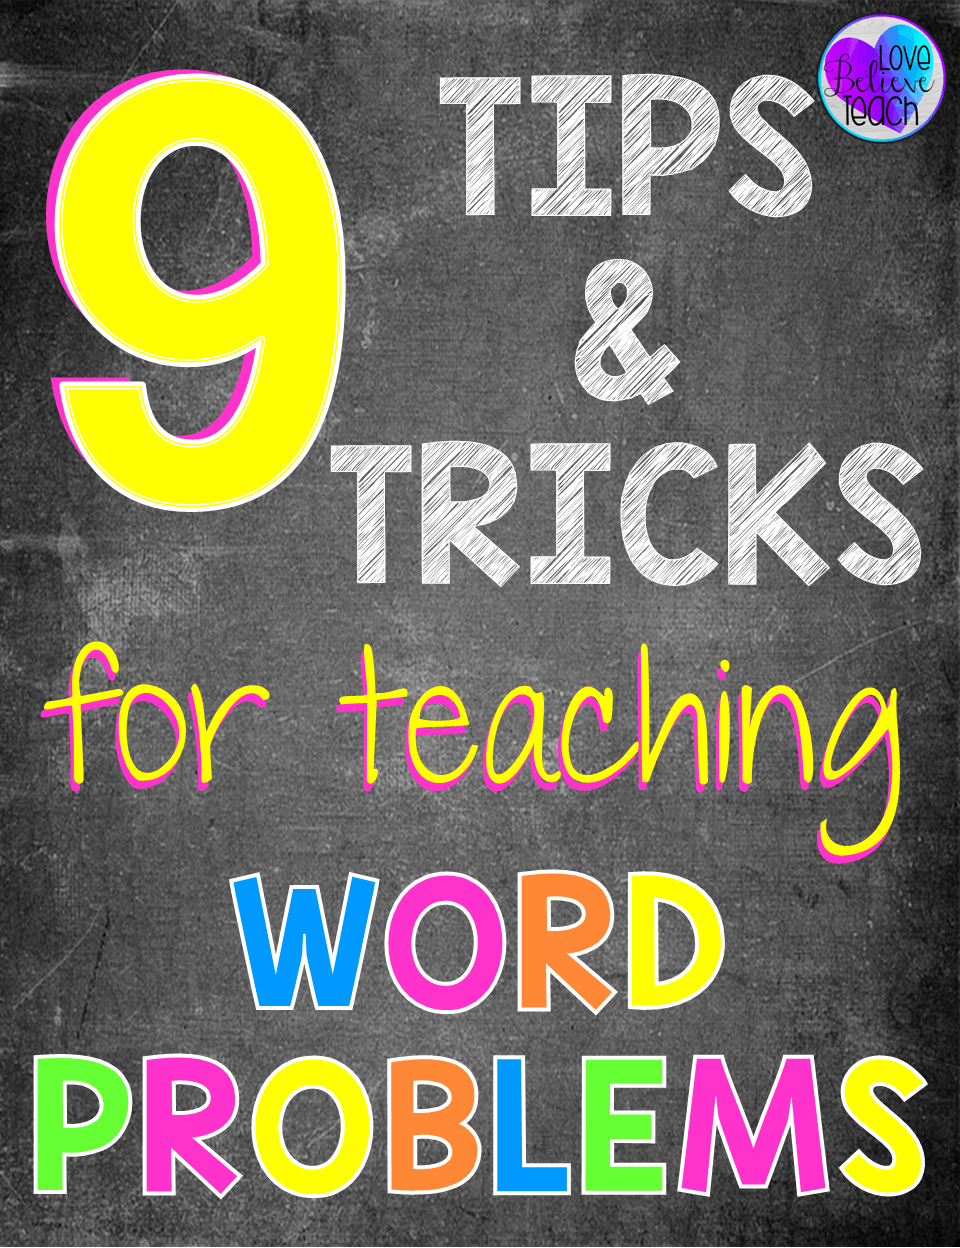 Teaching word problems is often the most challenging part of the curriculum for a math teacher. This veteran teacher shares nine tips and tricks for teaching word problems to help your students master them and to make them less challenging for you to teach!